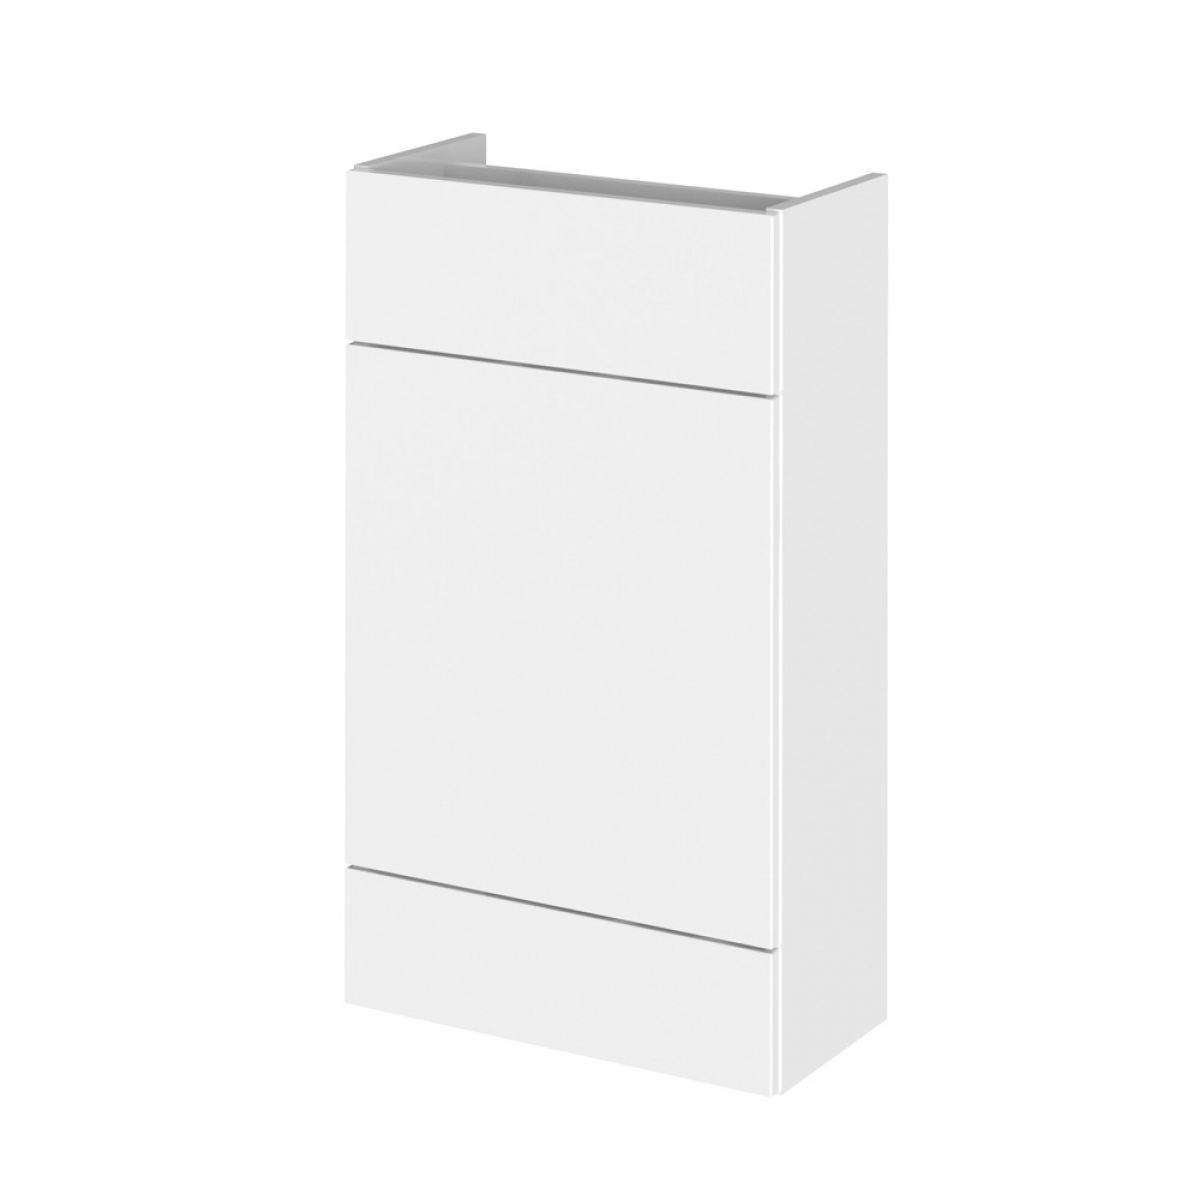 Hudson Reed Fusion Gloss White Slimline Combination Furniture Pack 1100mm